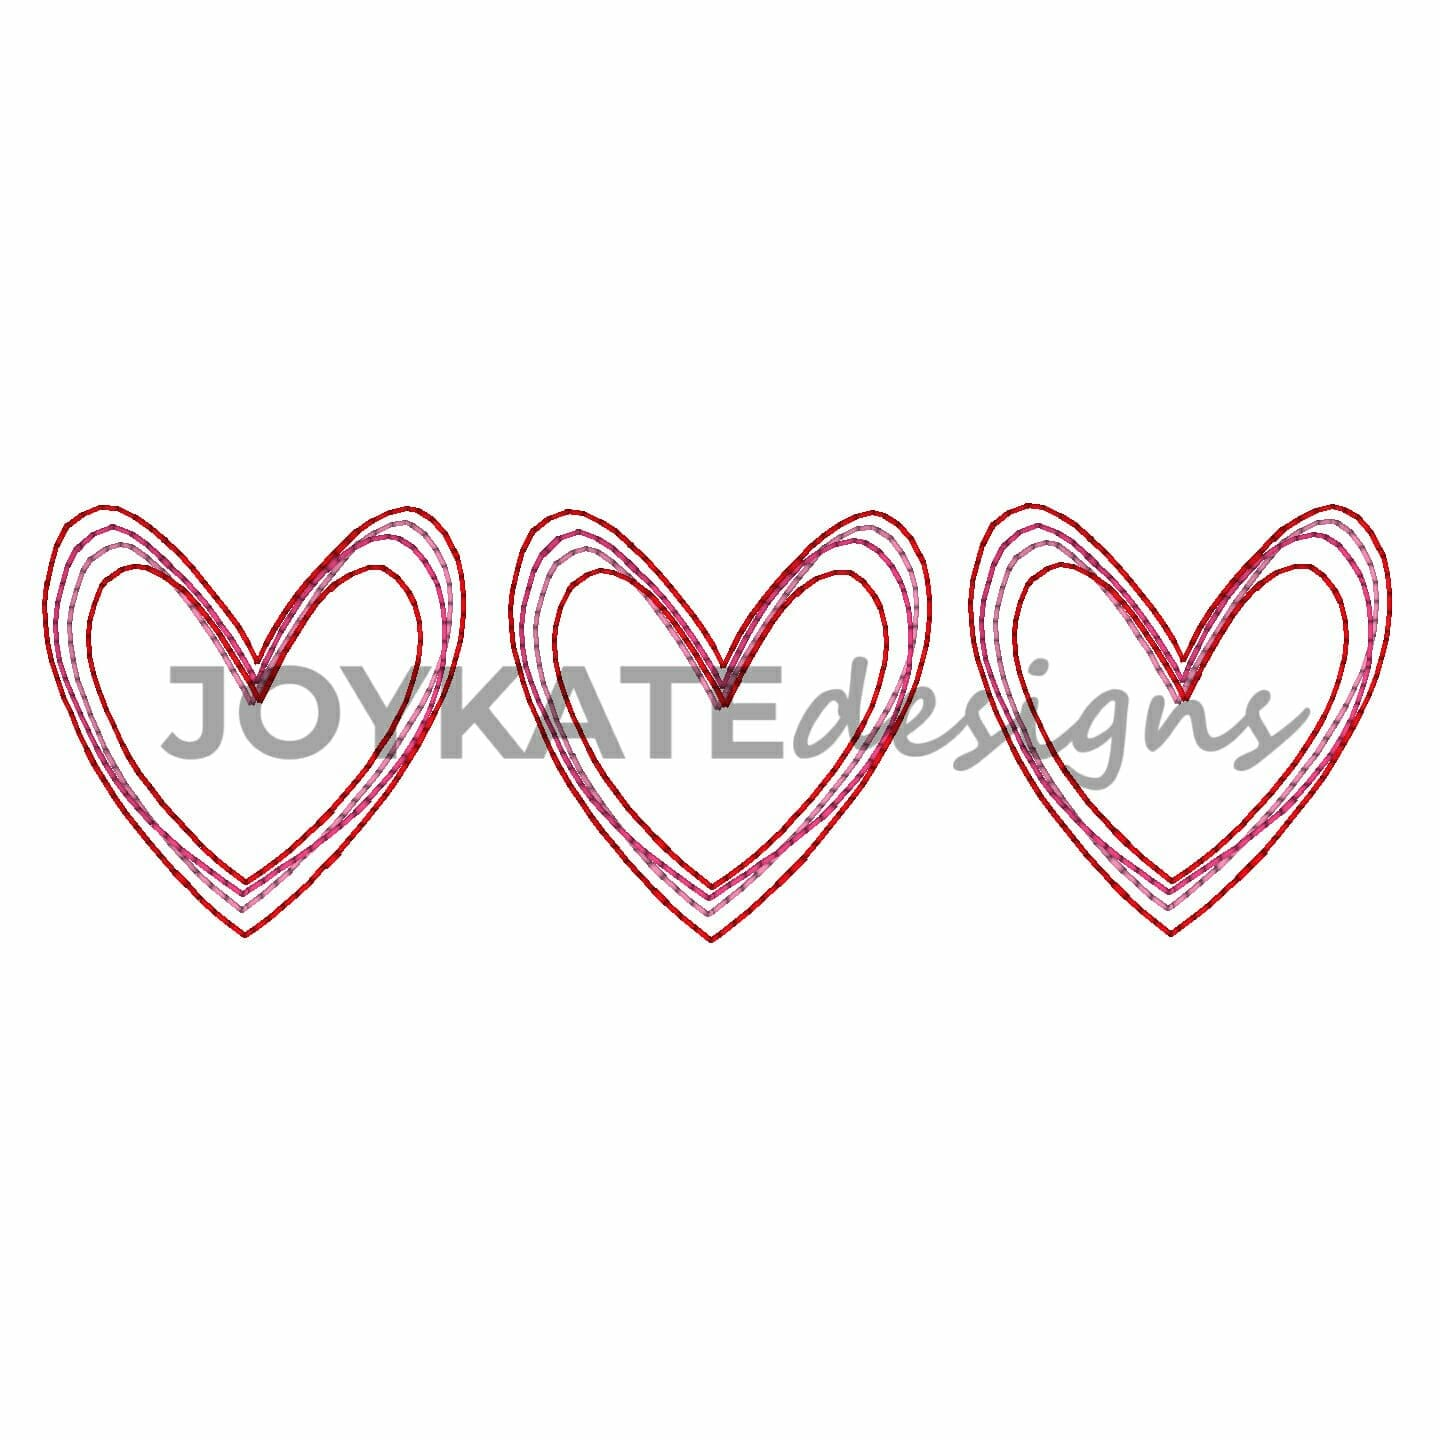 Valentine Heart Trio Vintage Embroidery Design Joy Kate Designs